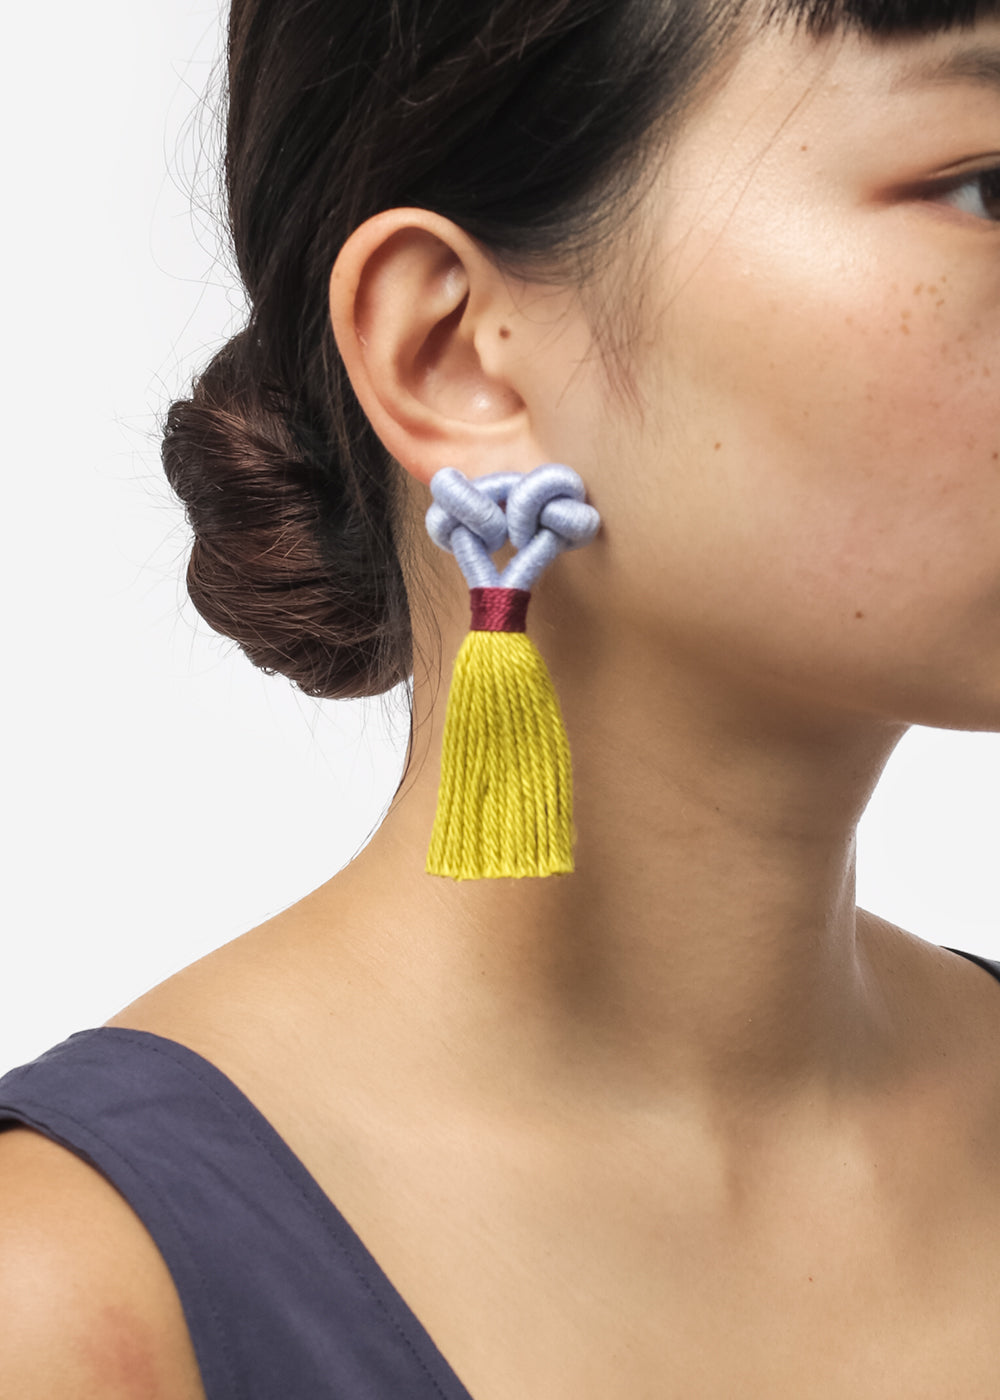 TALEE Kupu Earrings — Shop sustainable fashion and slow fashion at New Classics Studios